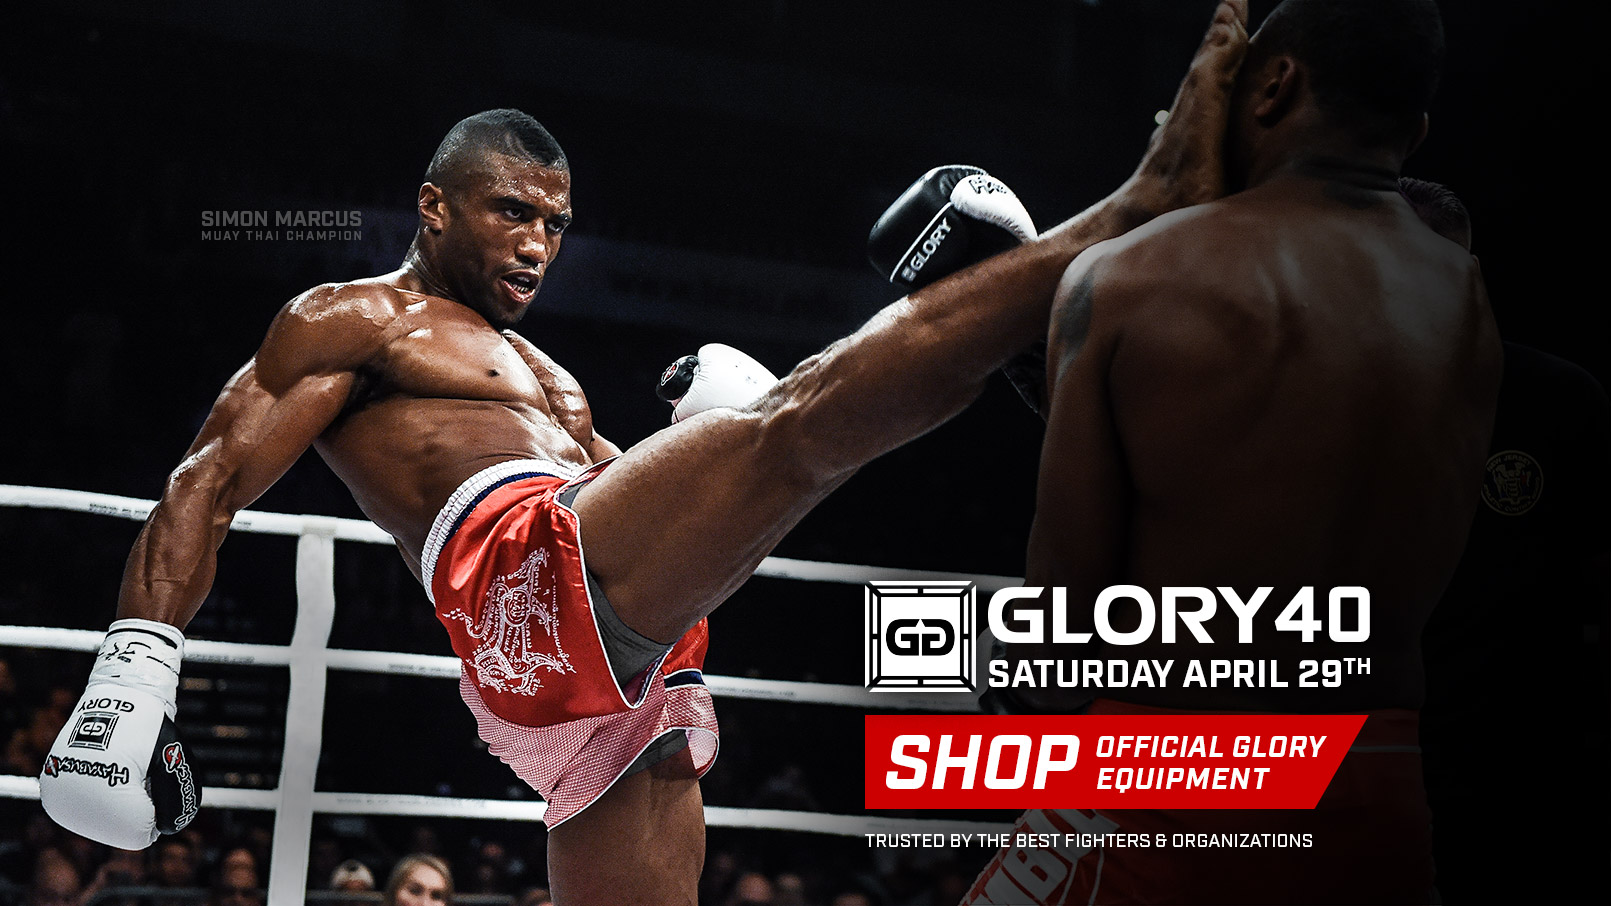 Glory40 - Fight Week - new website